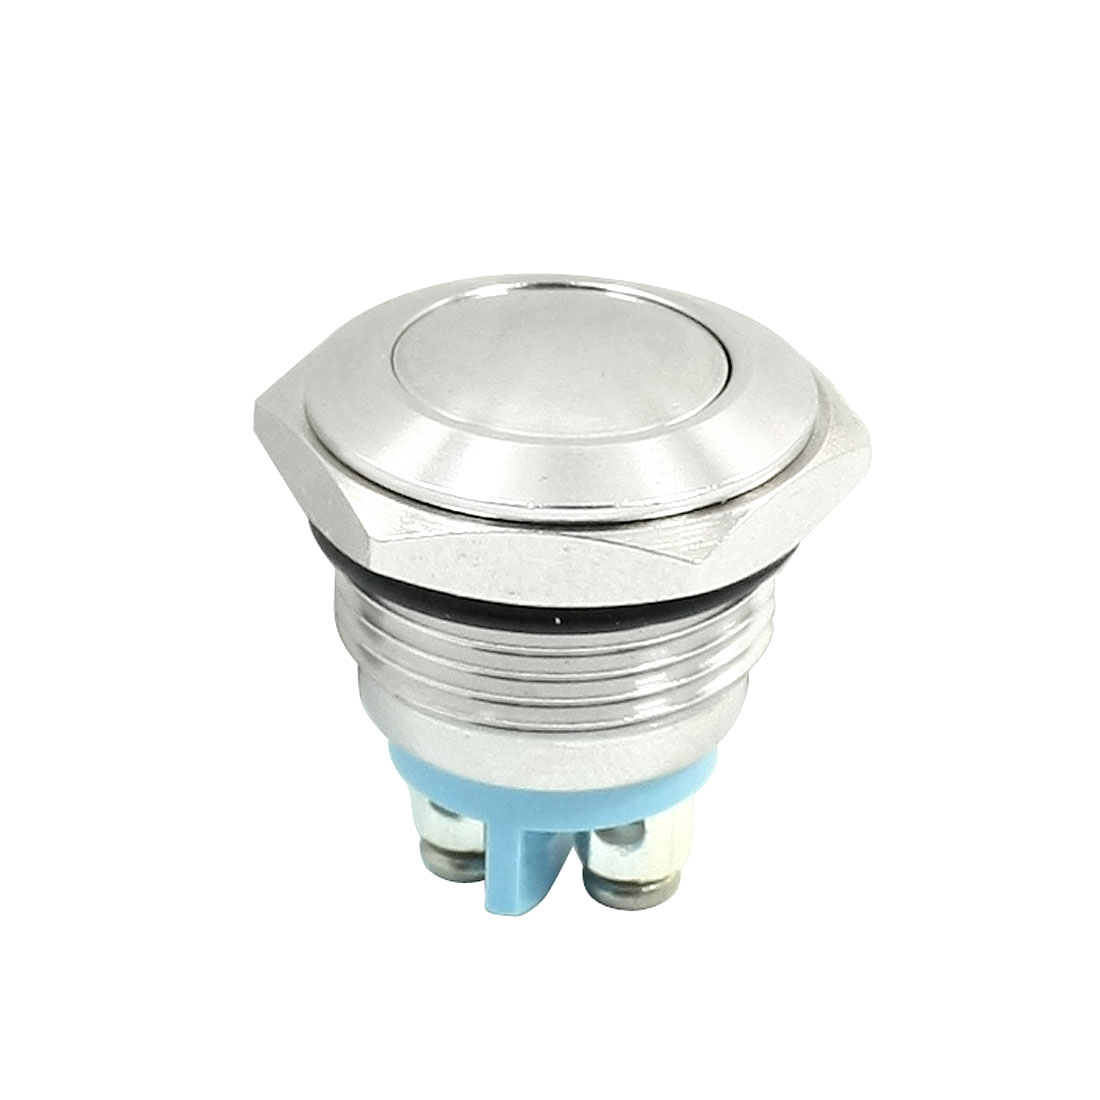 2-Screw Terminals 16mm Mounting SPST Momentary Metal Pushbutton Switch